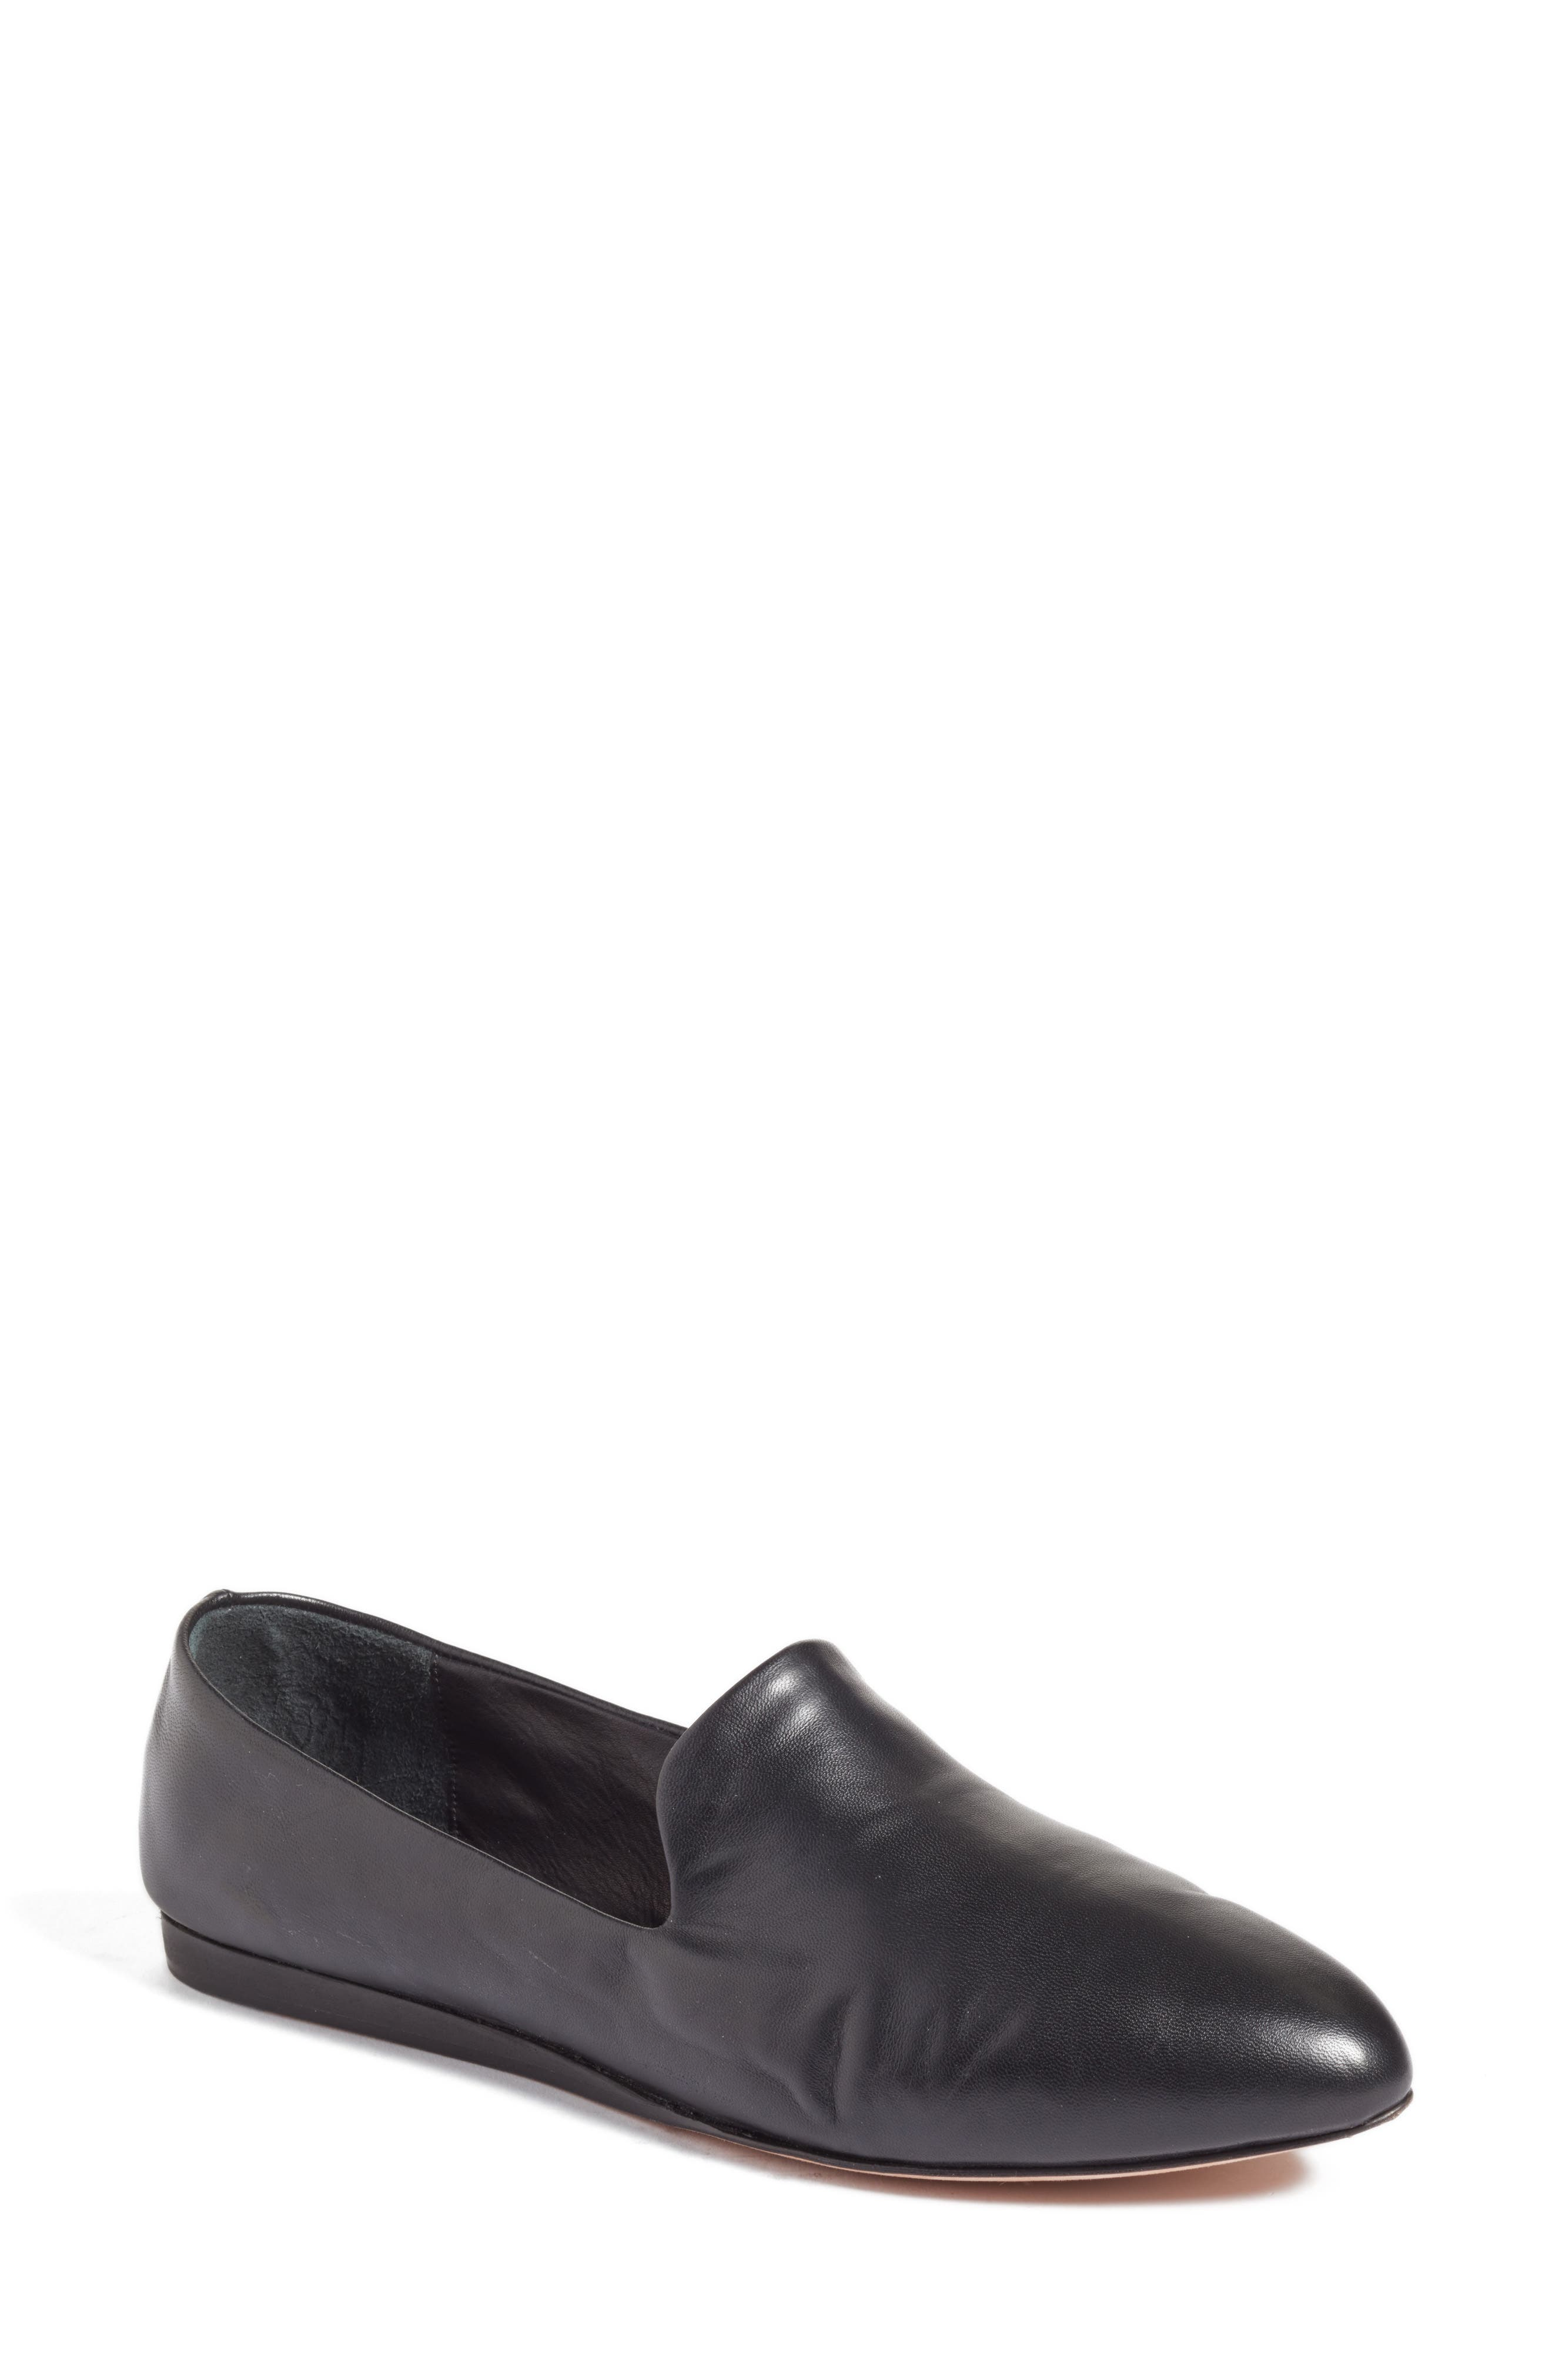 Alternate Image 1 Selected - Veronica Beard Griffin Pointy Toe Loafer (Women)